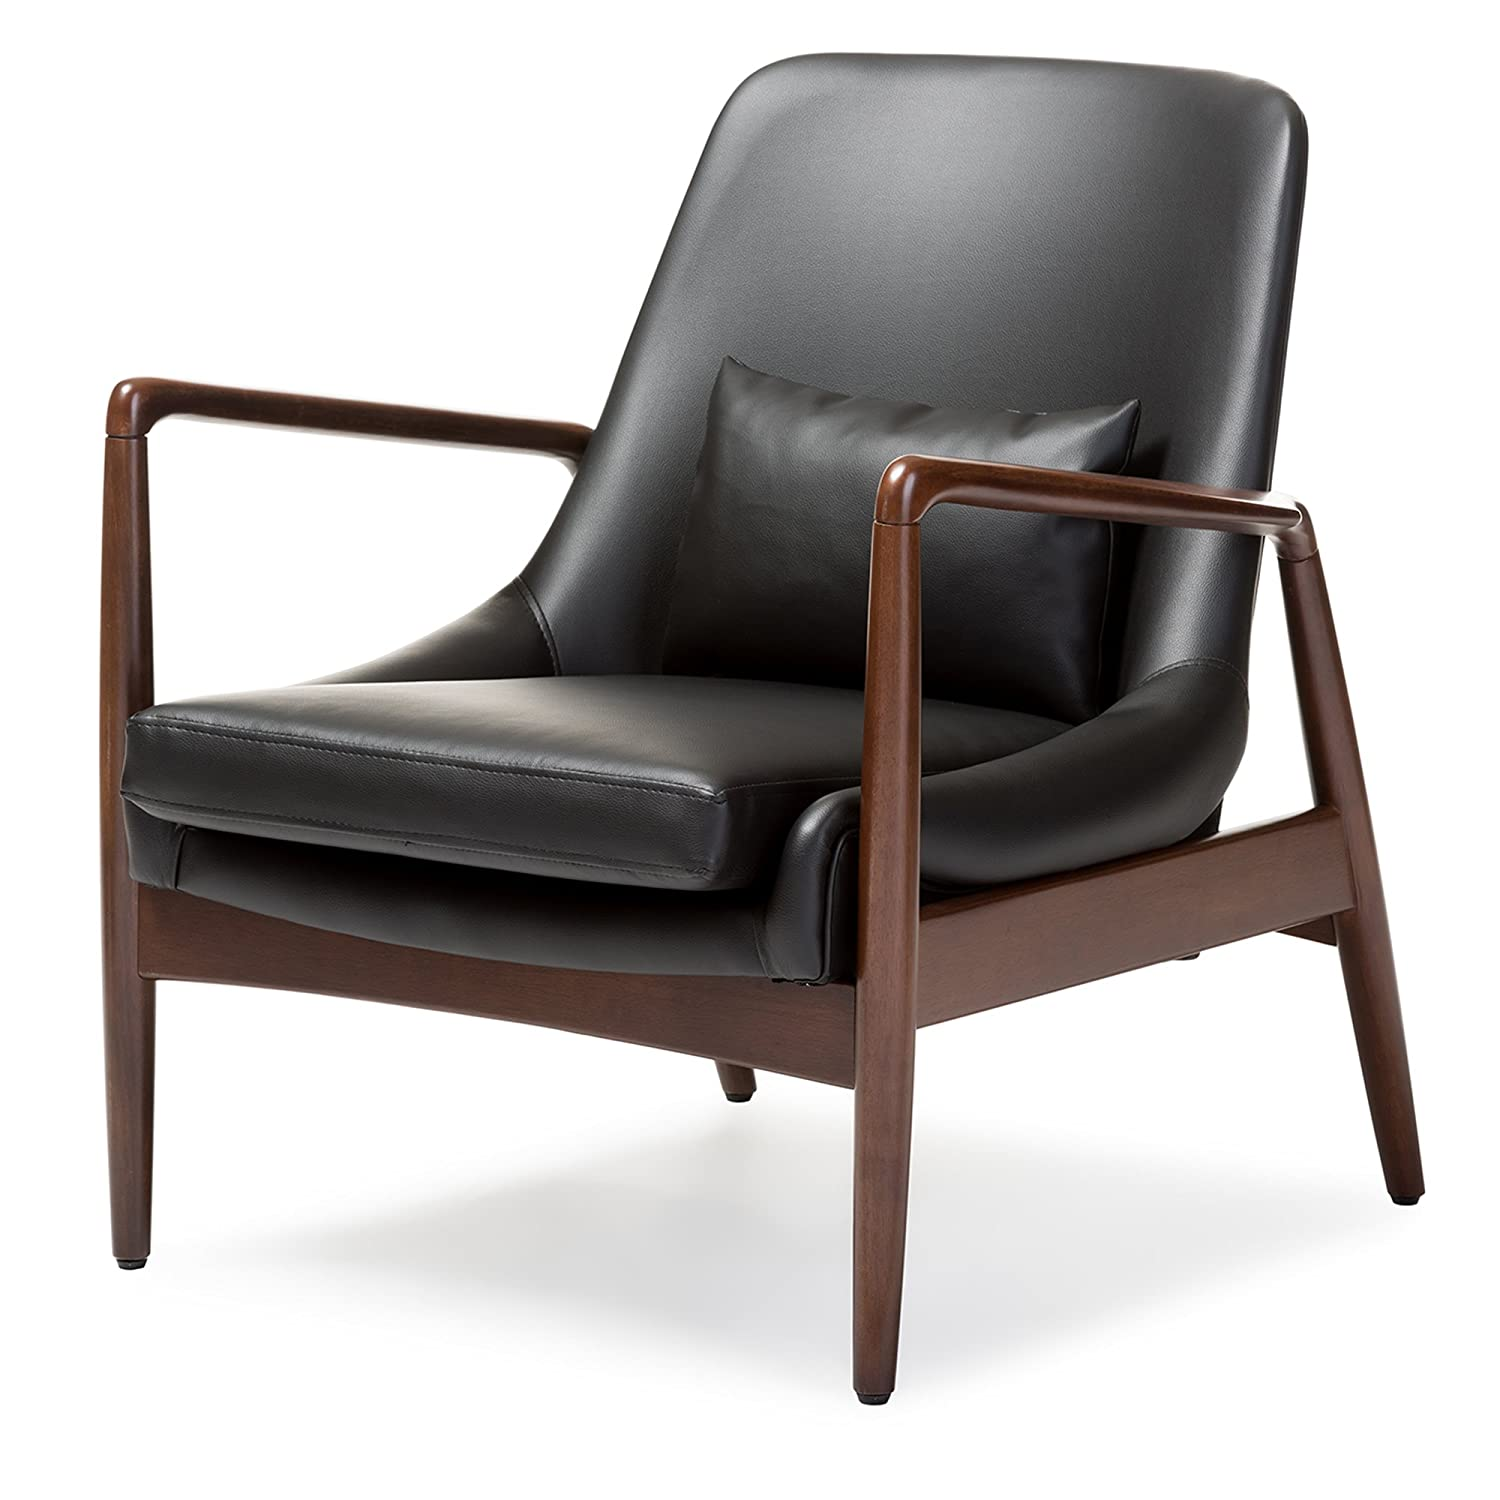 wood frame accent chairs. Amazon.com: Baxton Studio Carter Mid-Century Modern Retro Faux Leather Upholstered Walnut Wood Frame Leisure Accent Chair, Medium, Black: Kitchen \u0026 Dining Chairs R